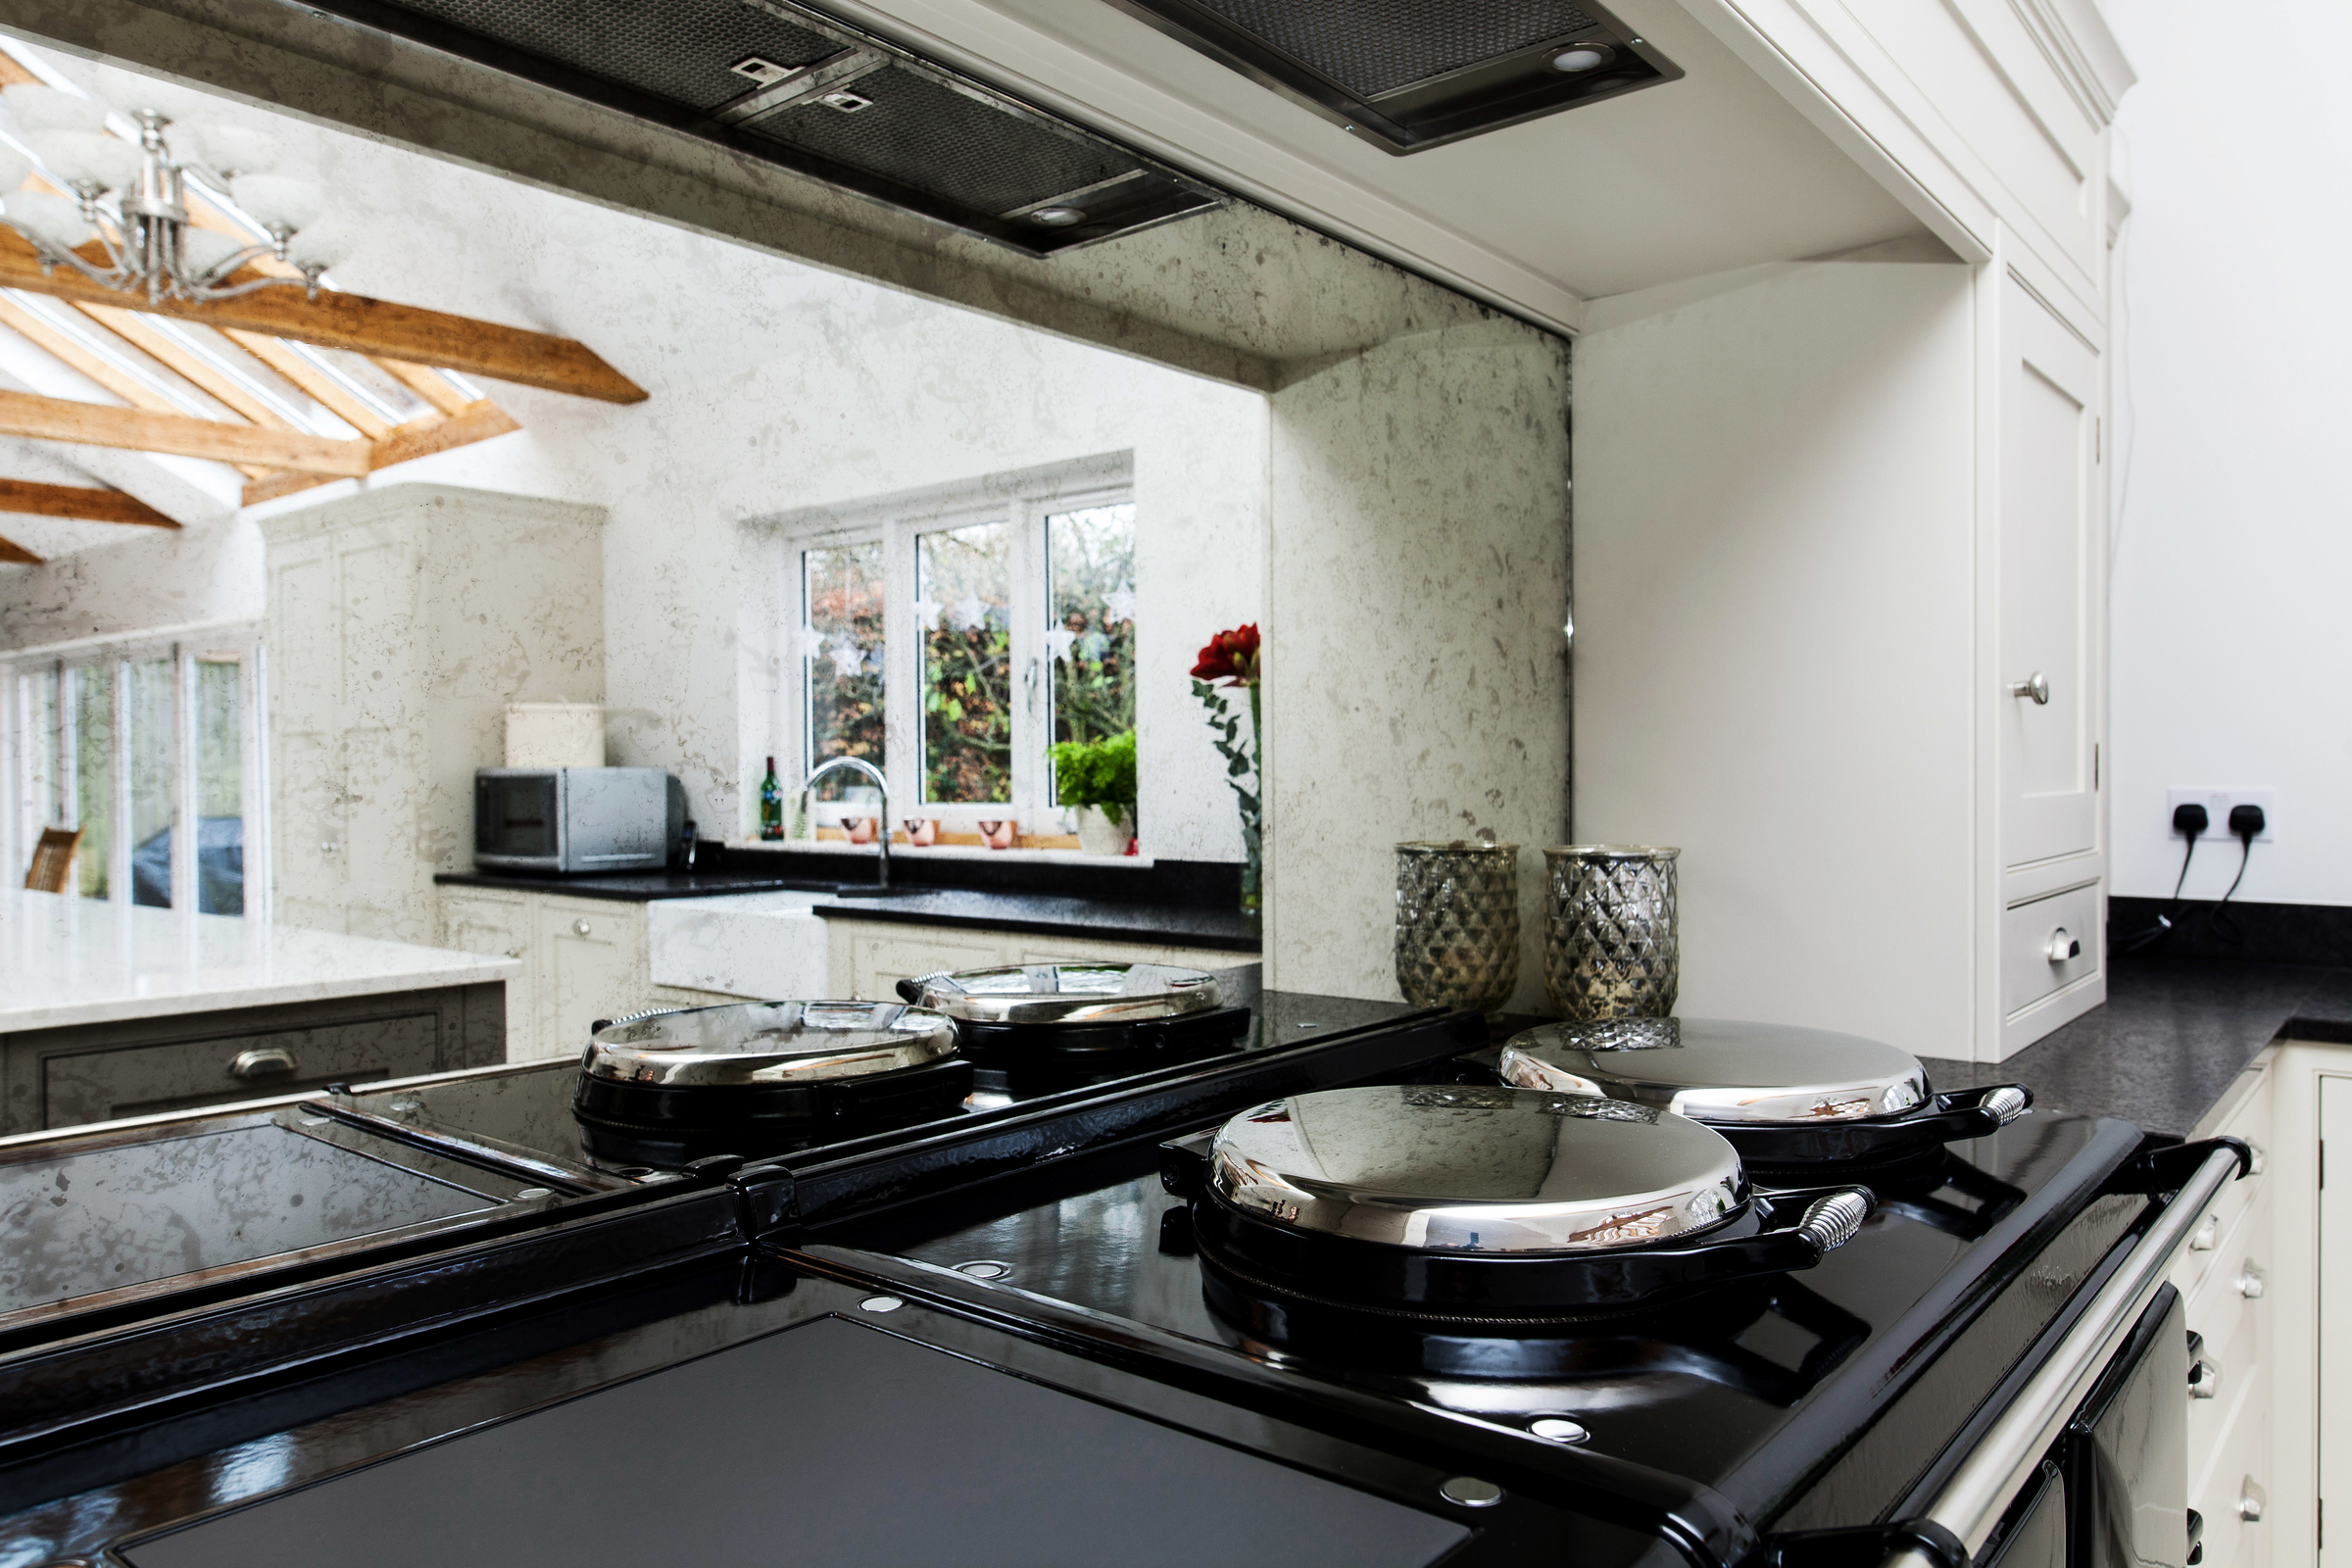 an antique mirrored glass splashback